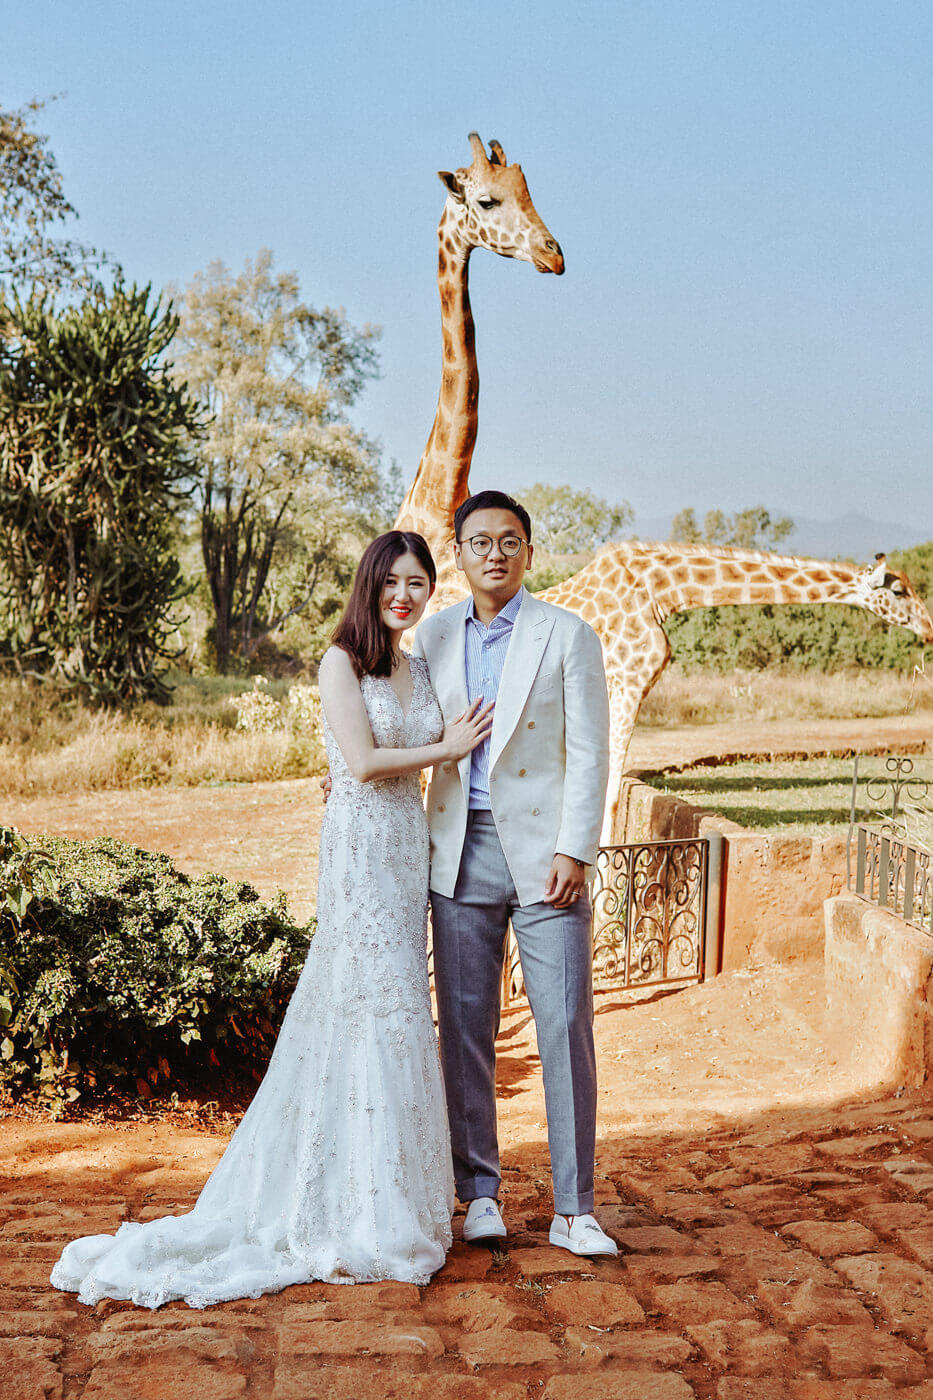 Giraffe Manor Photography Best Safari Wedding Photo Session Award Winning Fashion Female Destination Kenyan Top Kenya Wedding Photographer